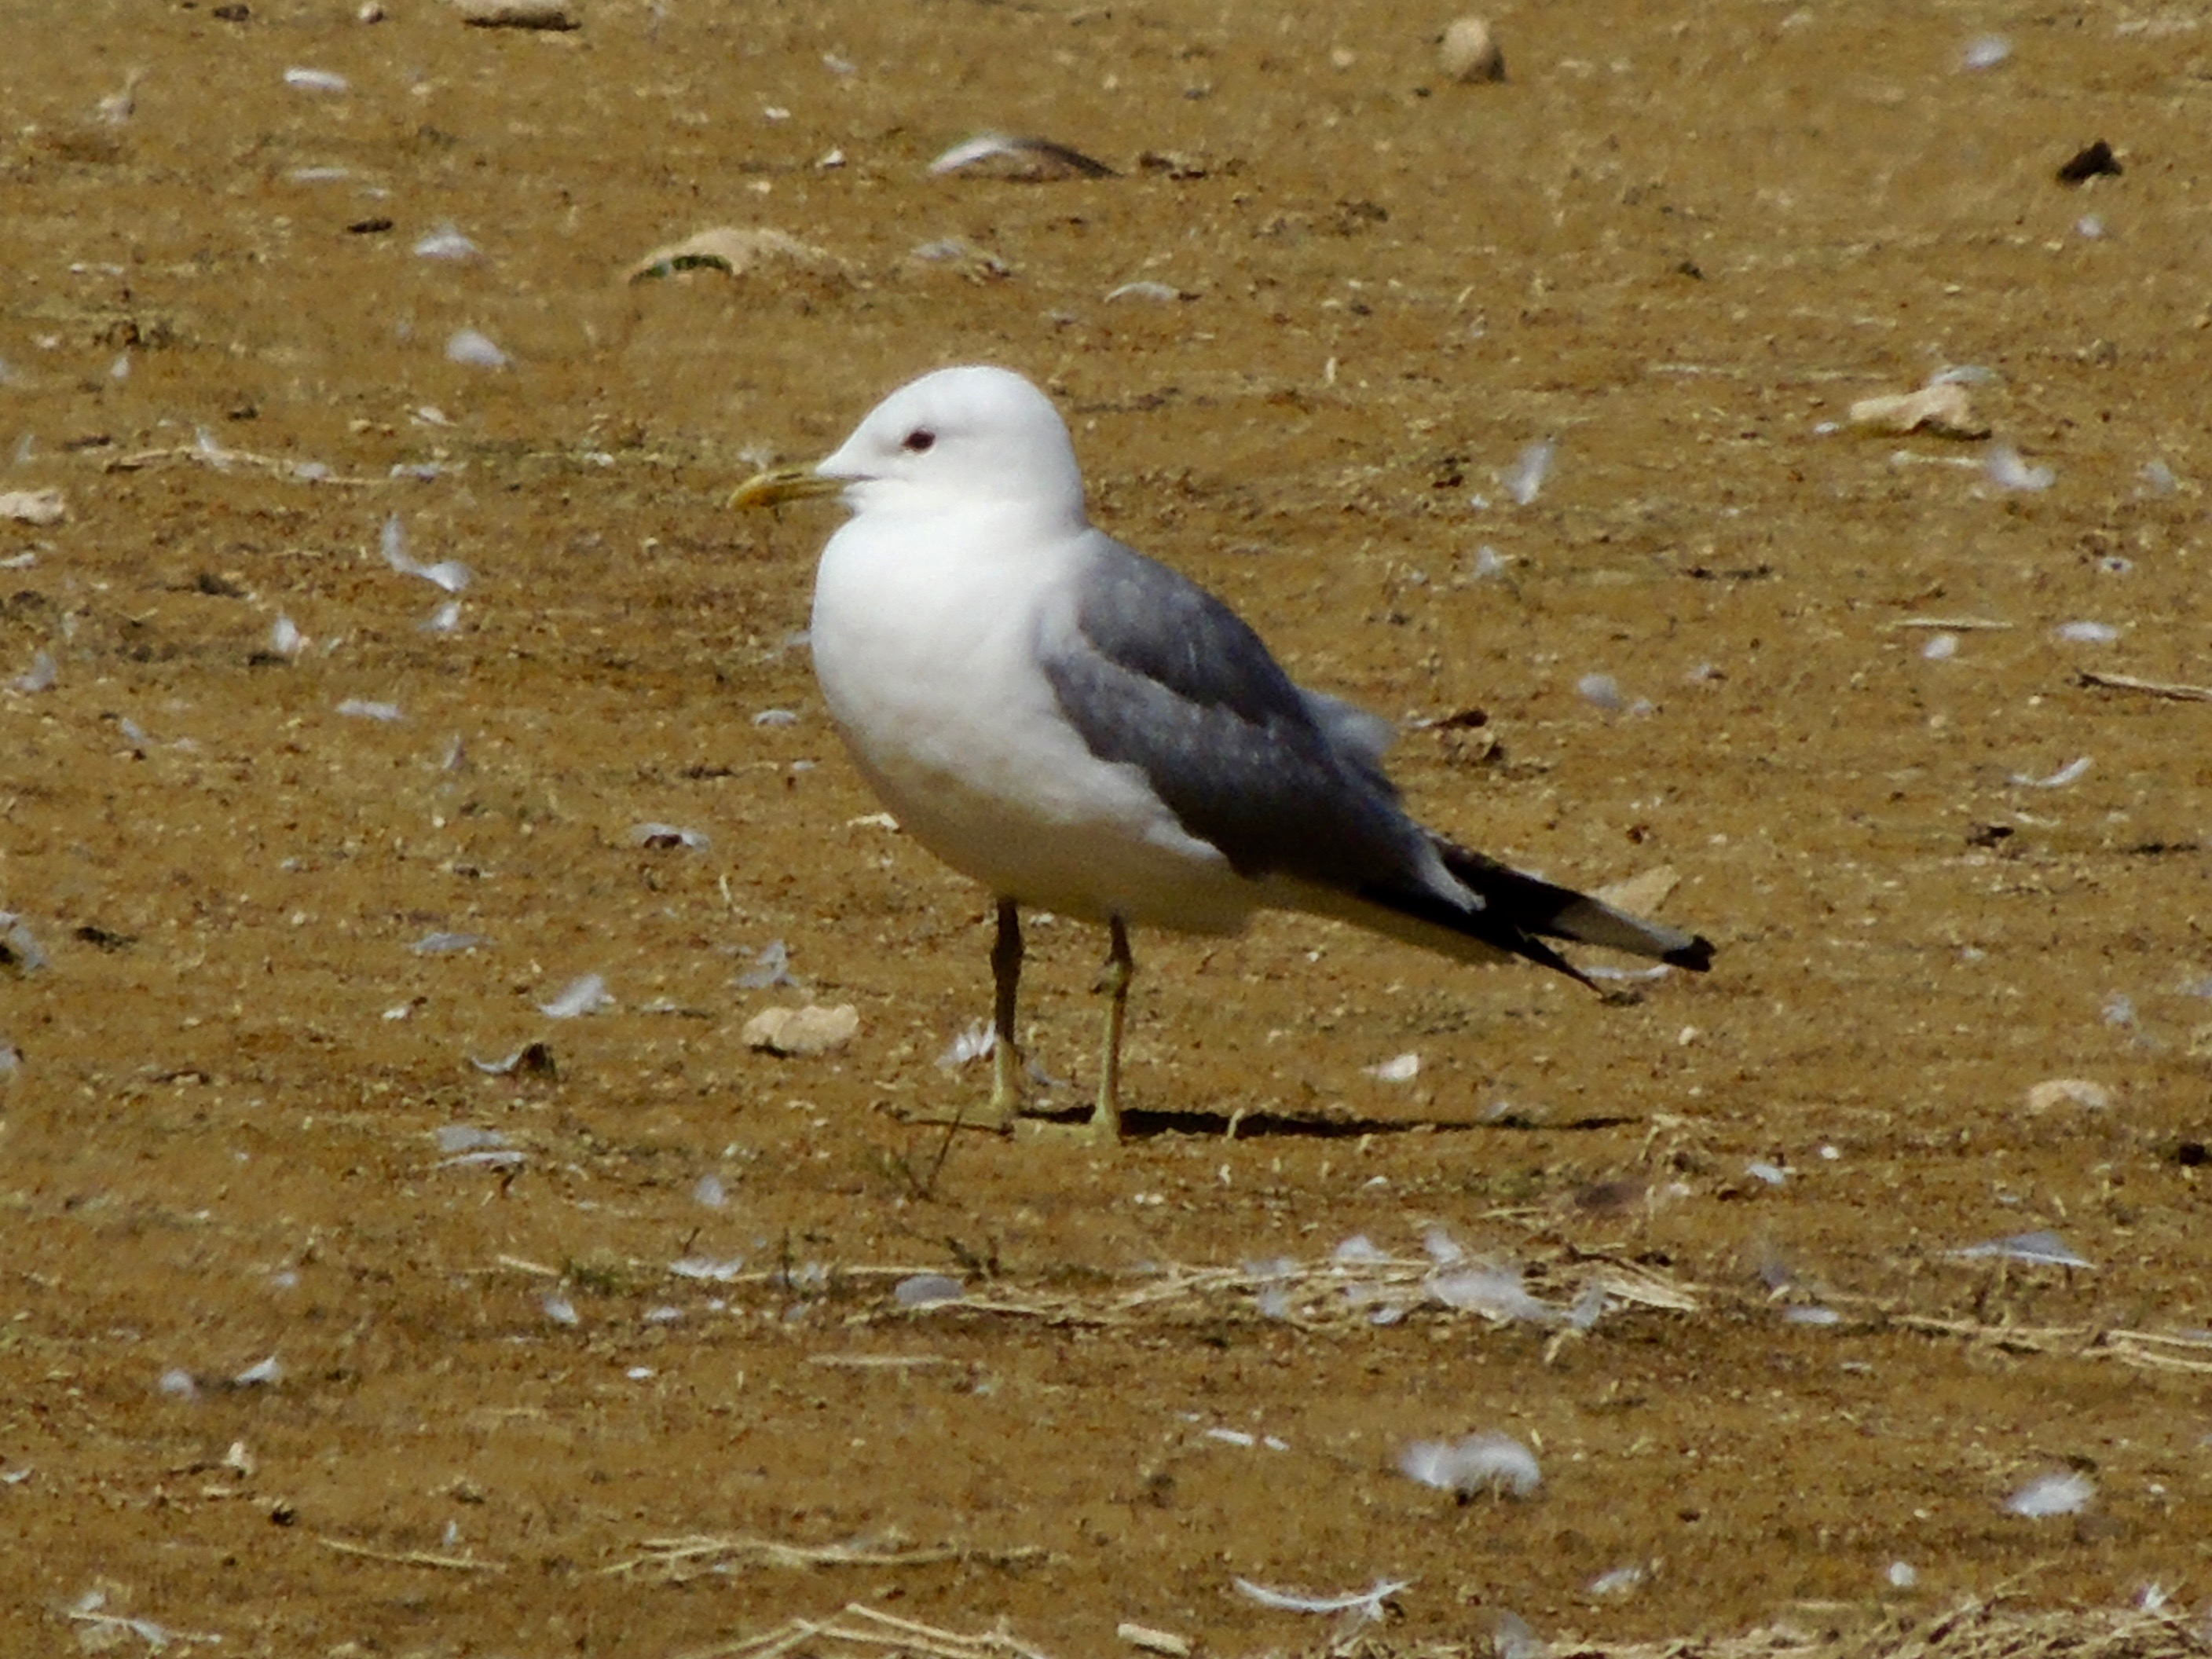 Common Gull at Hanningfield Reservoir on 16 Jul 2019, (David Hale, NIKON BRIDGE.)